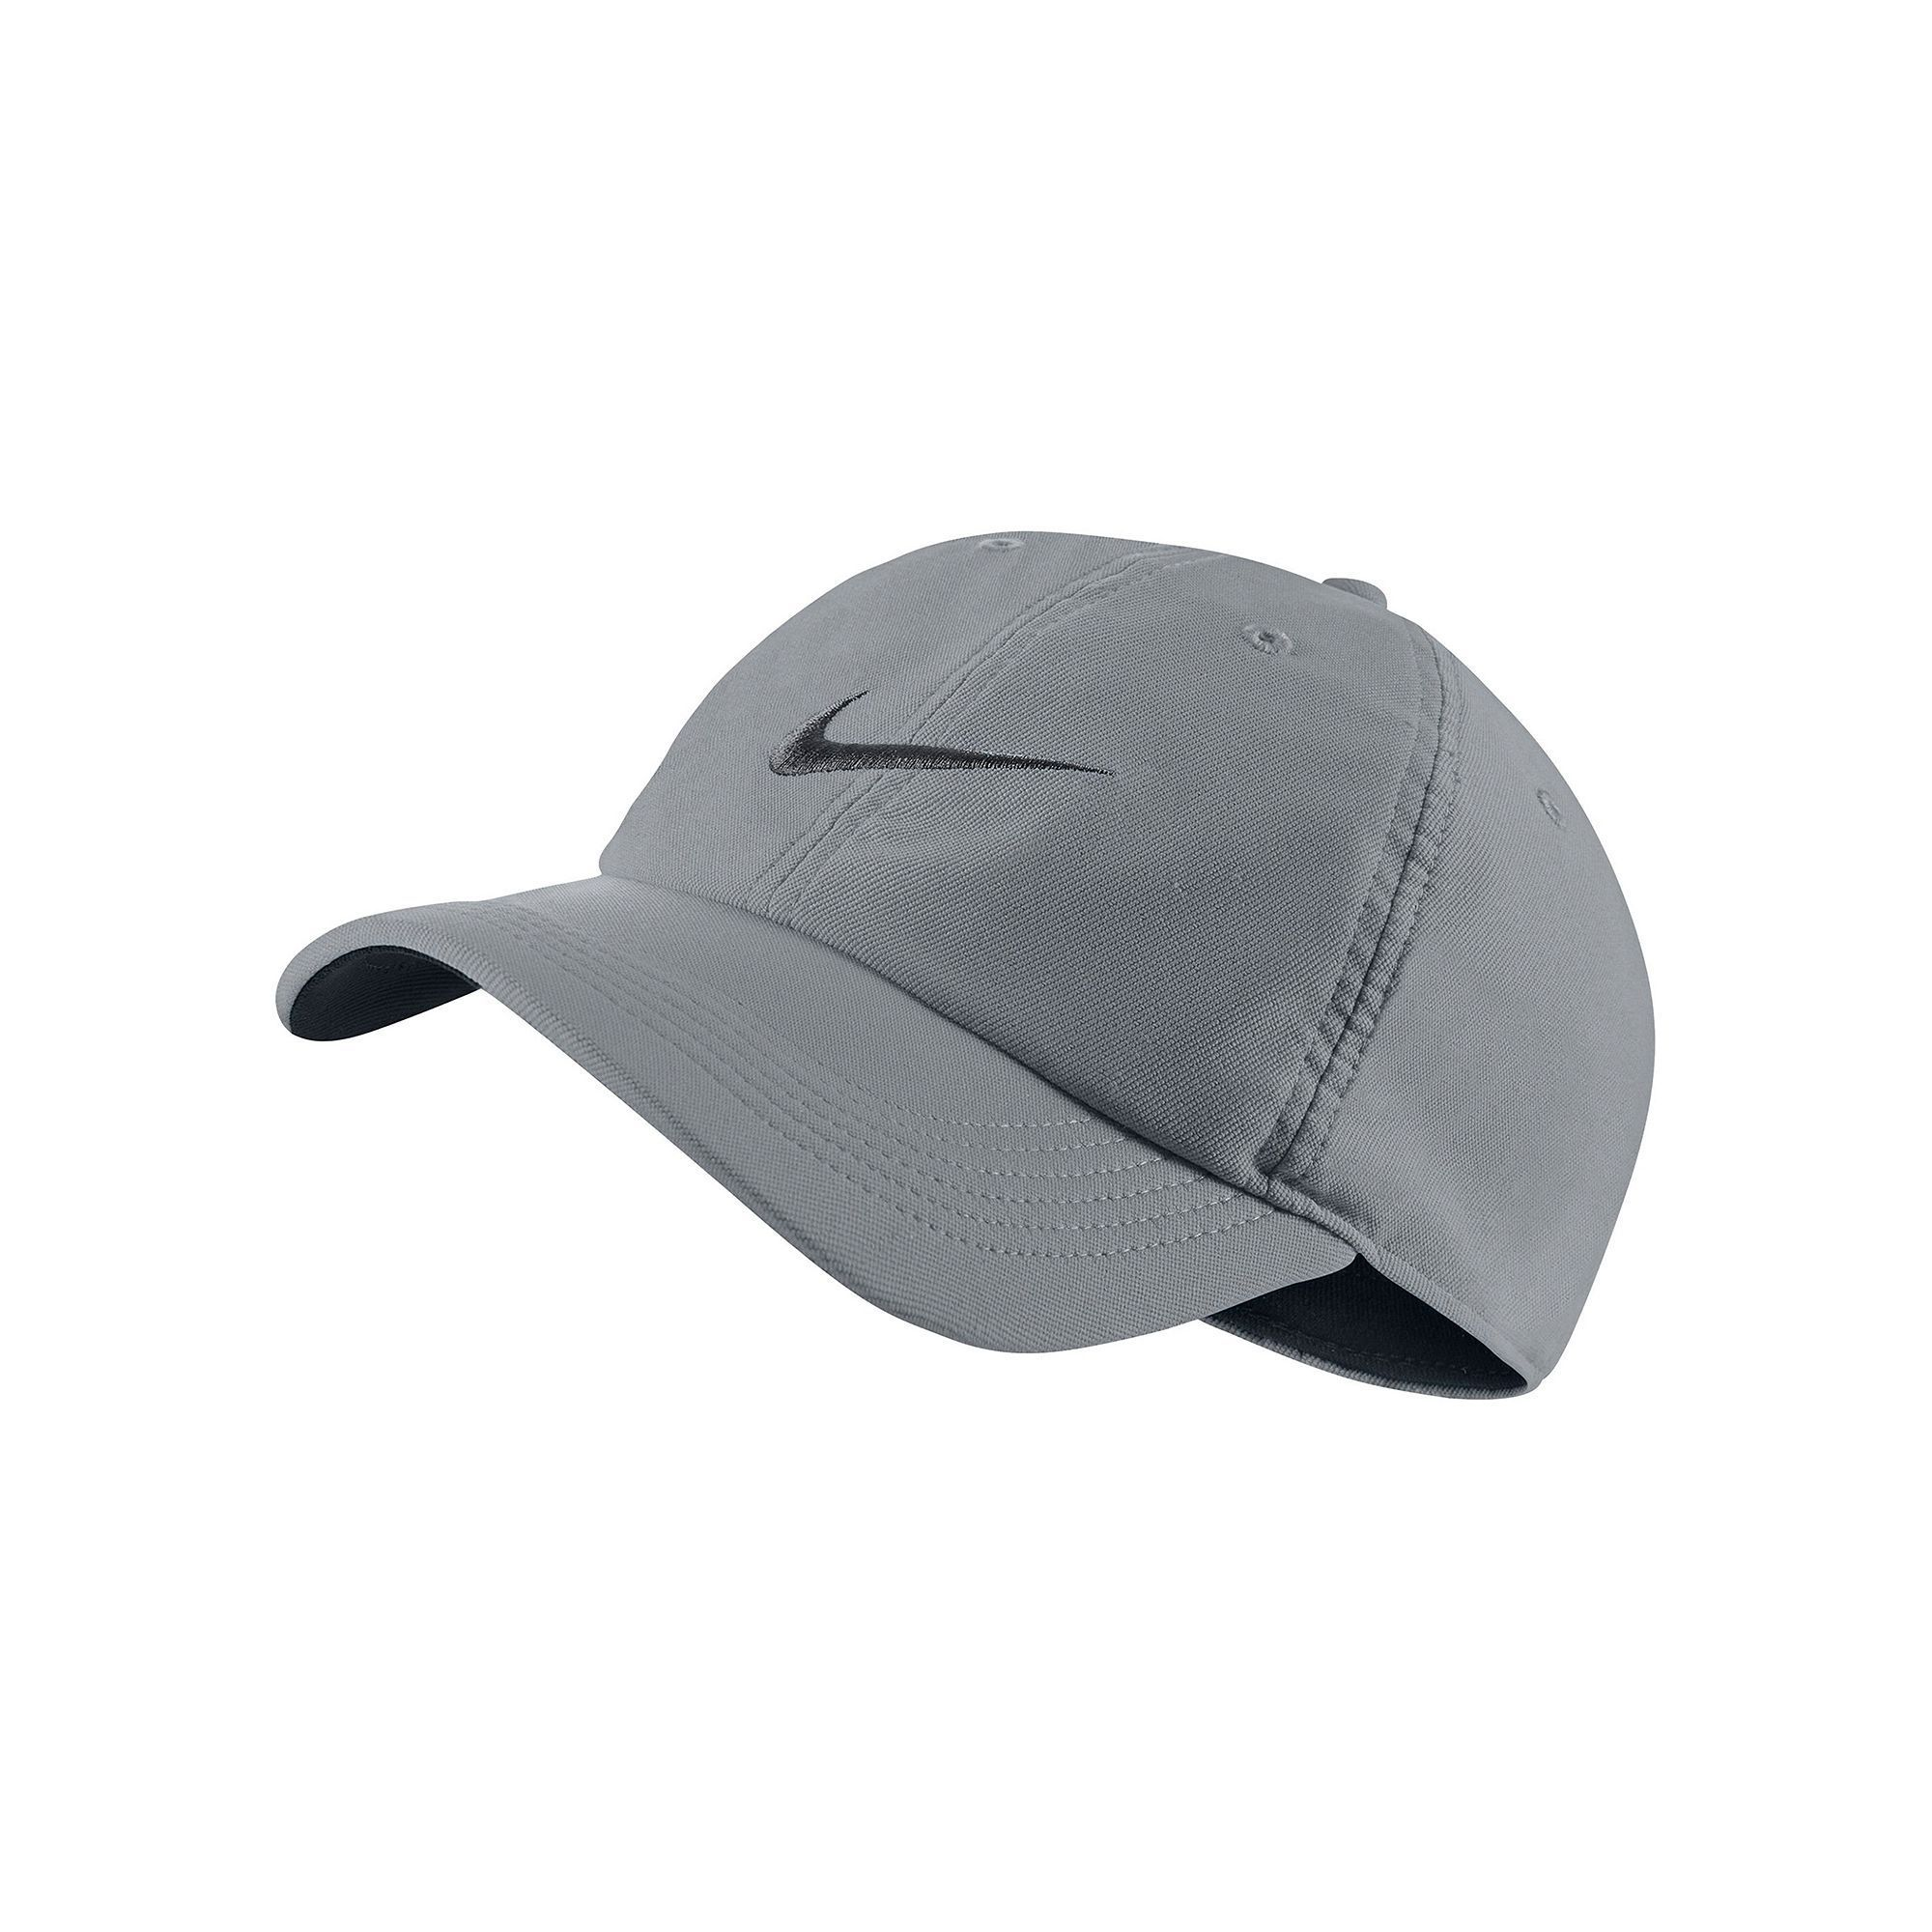 34b0ffc8d82 Men s Nike Dri-FIT Train Twill Cap